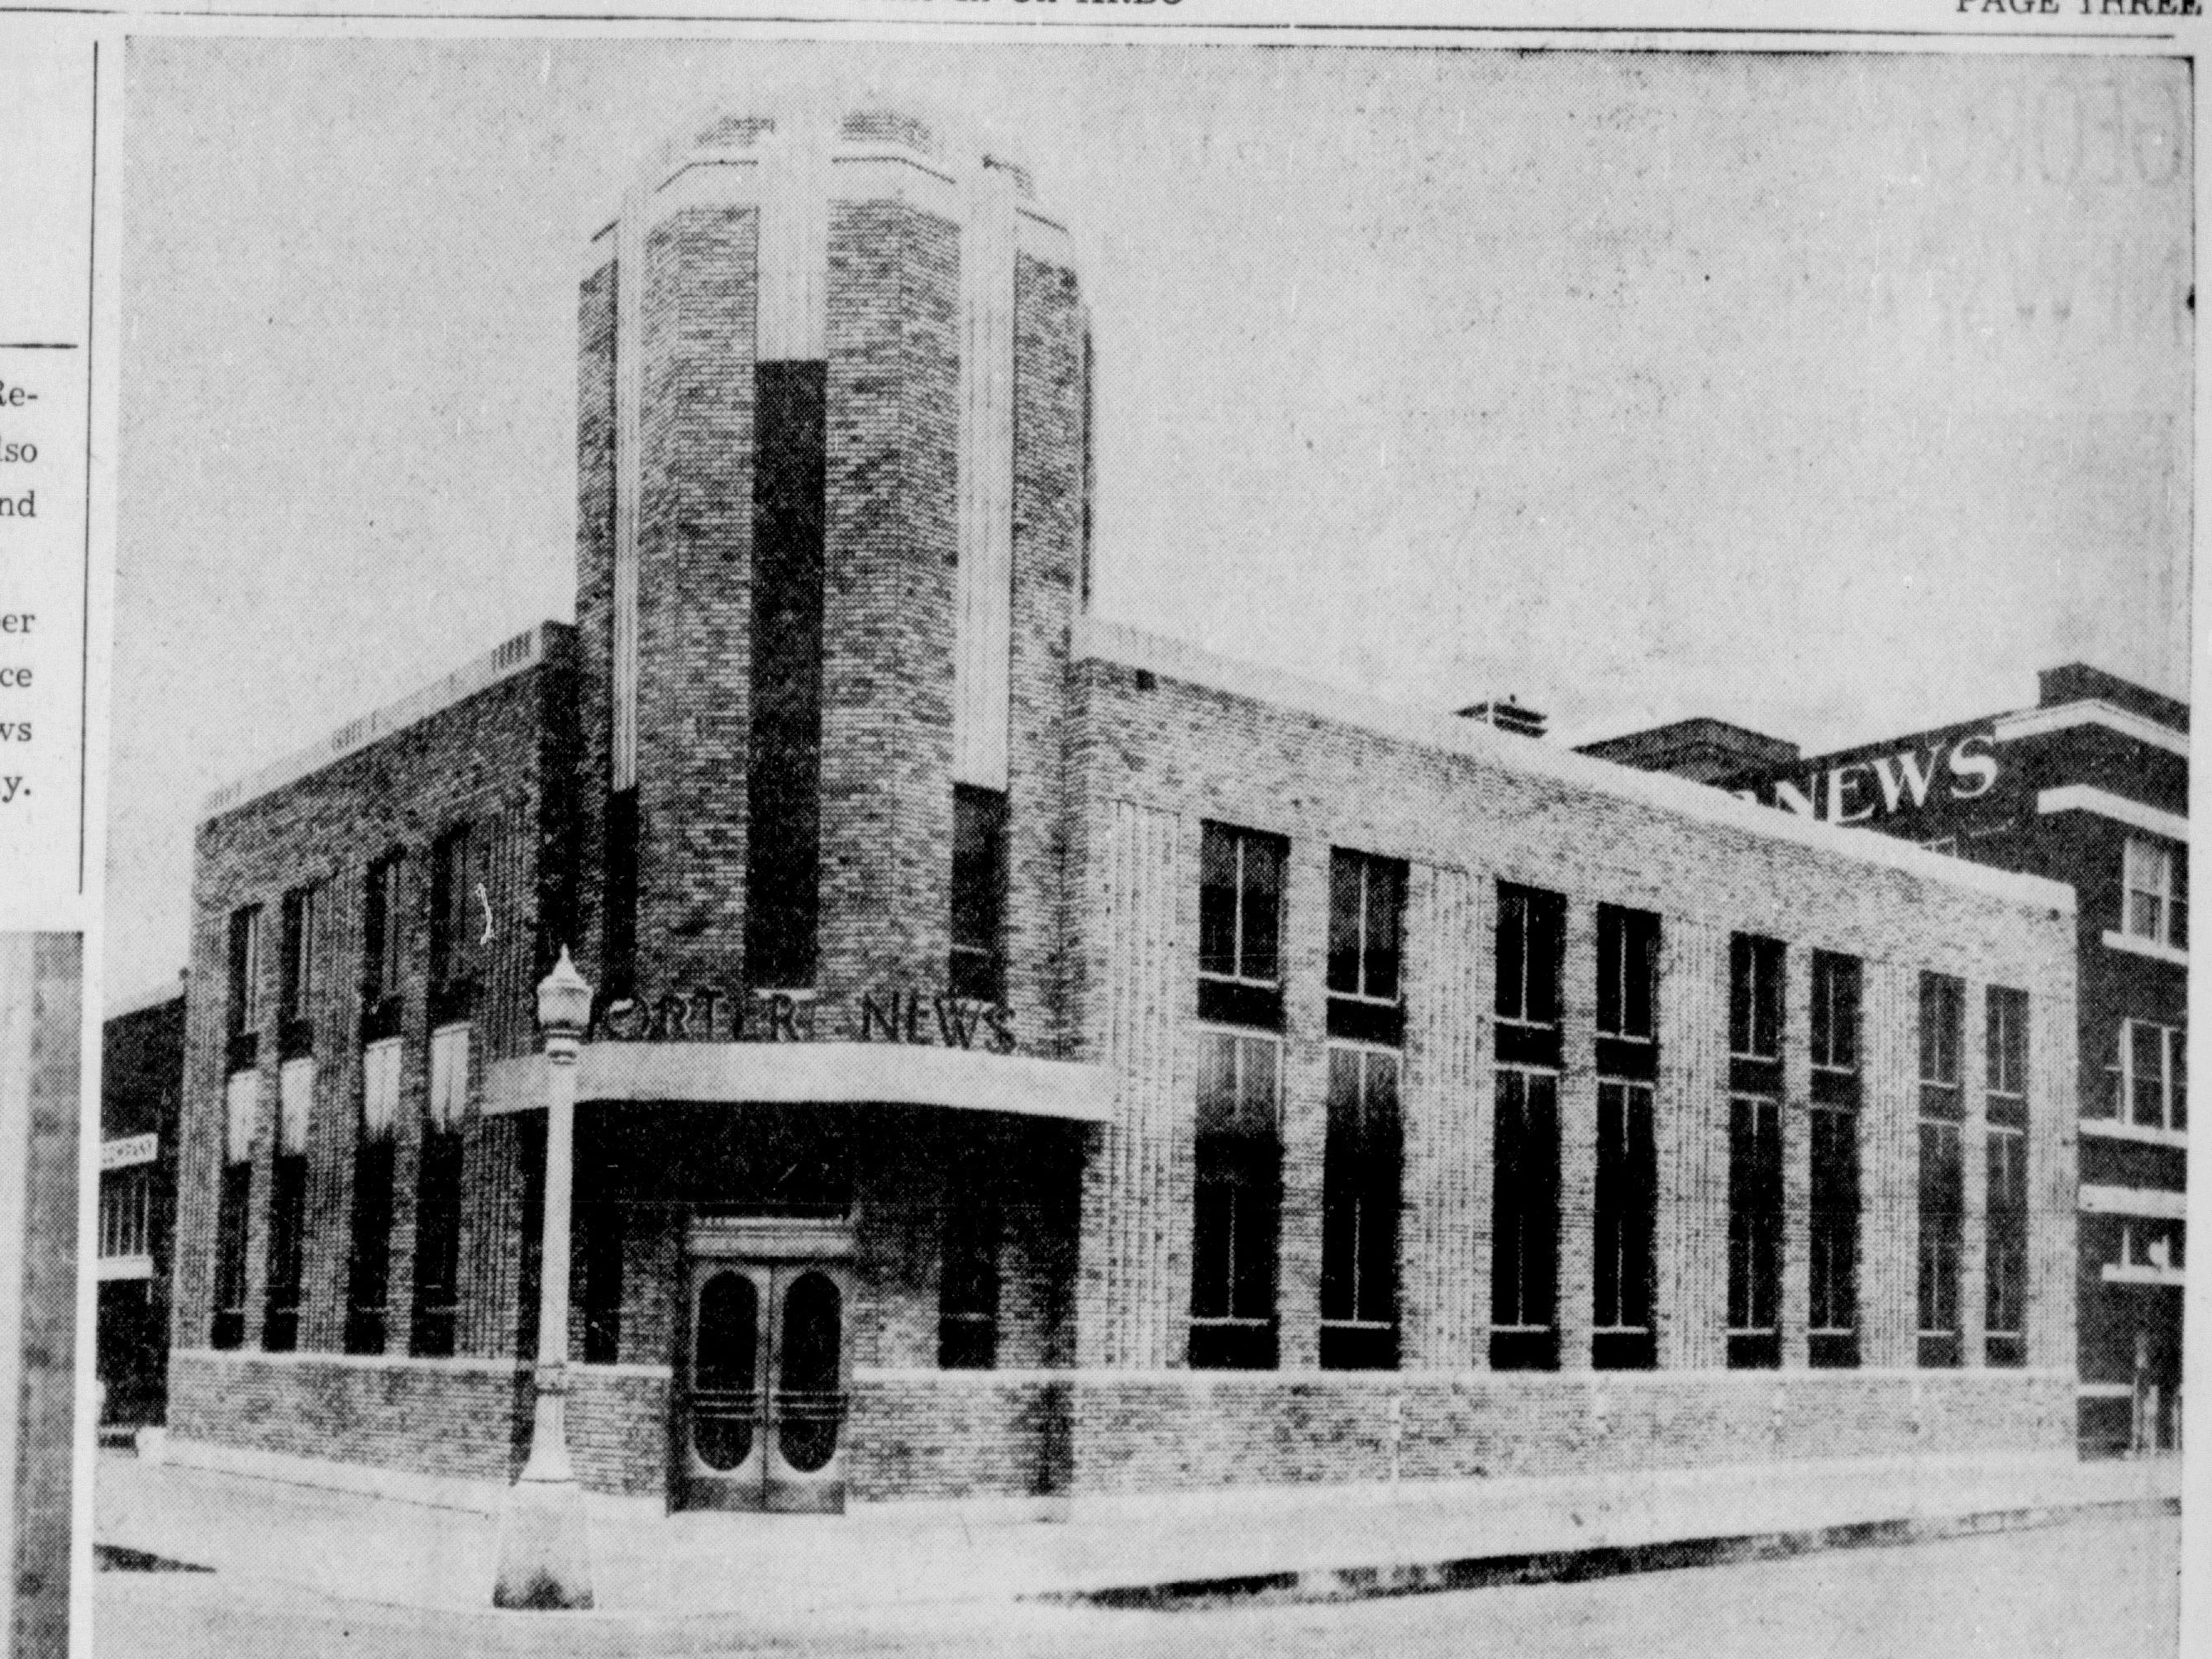 The Abilene Reporter-News building was remodeled extensively in 1940.